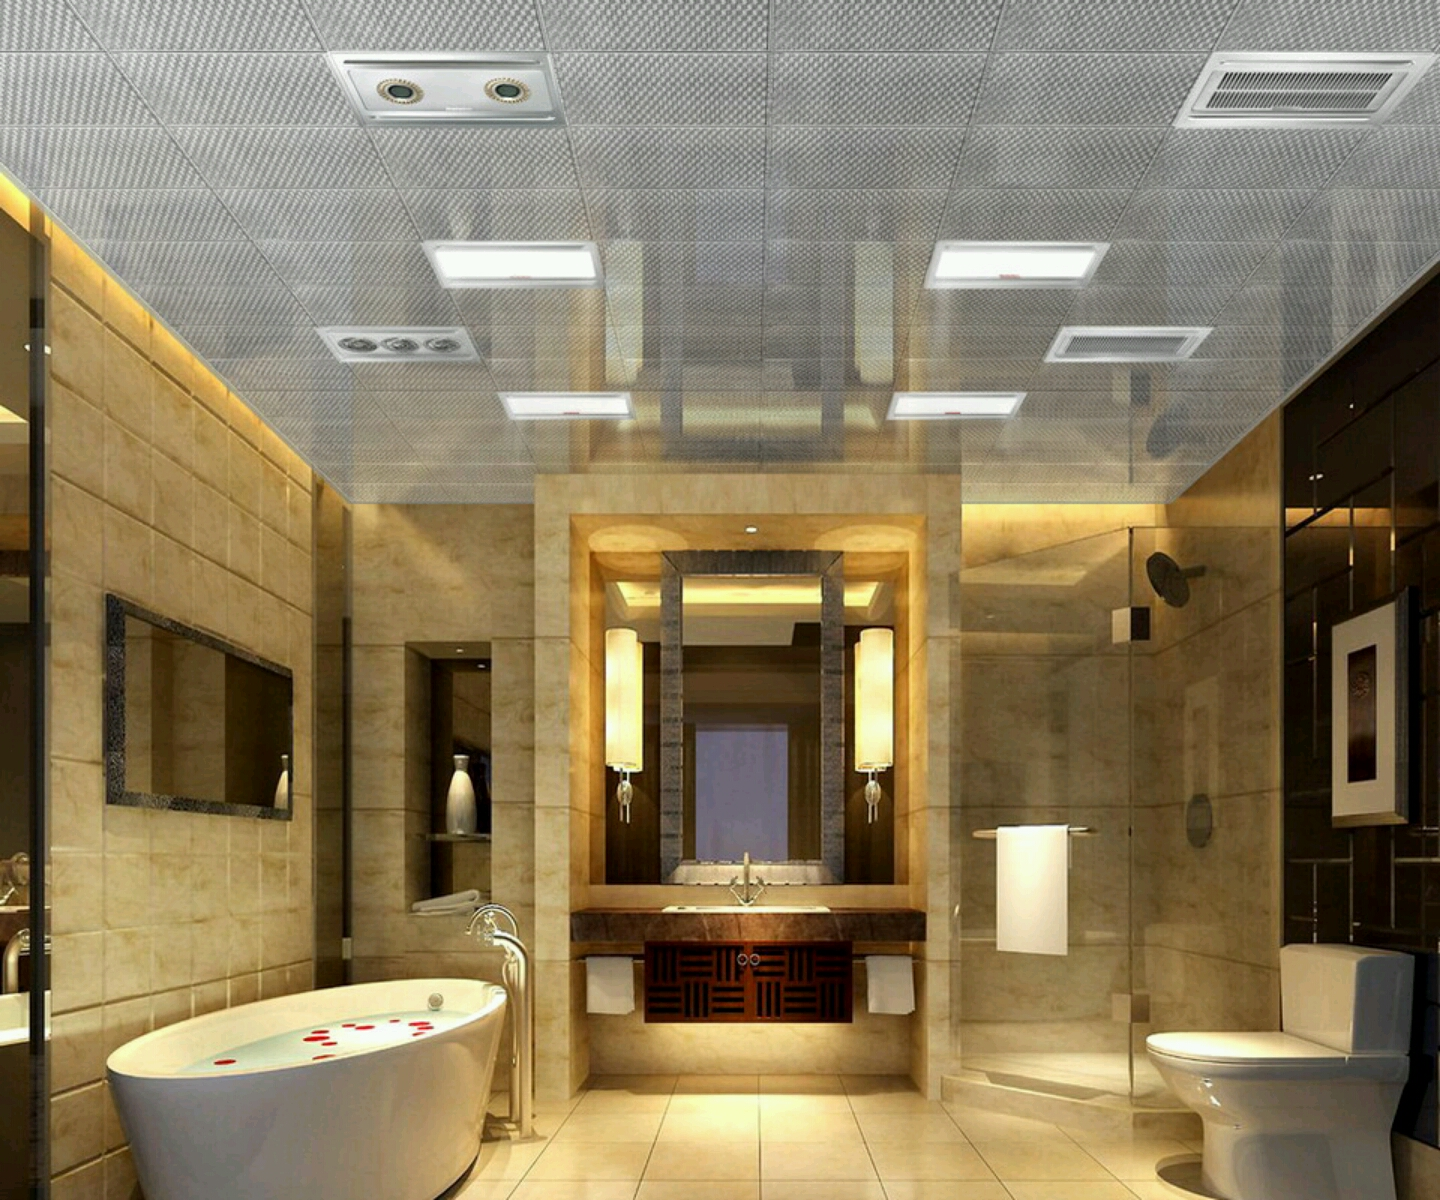 New home designs latest luxury bathrooms designs ideas Home bathroom designs